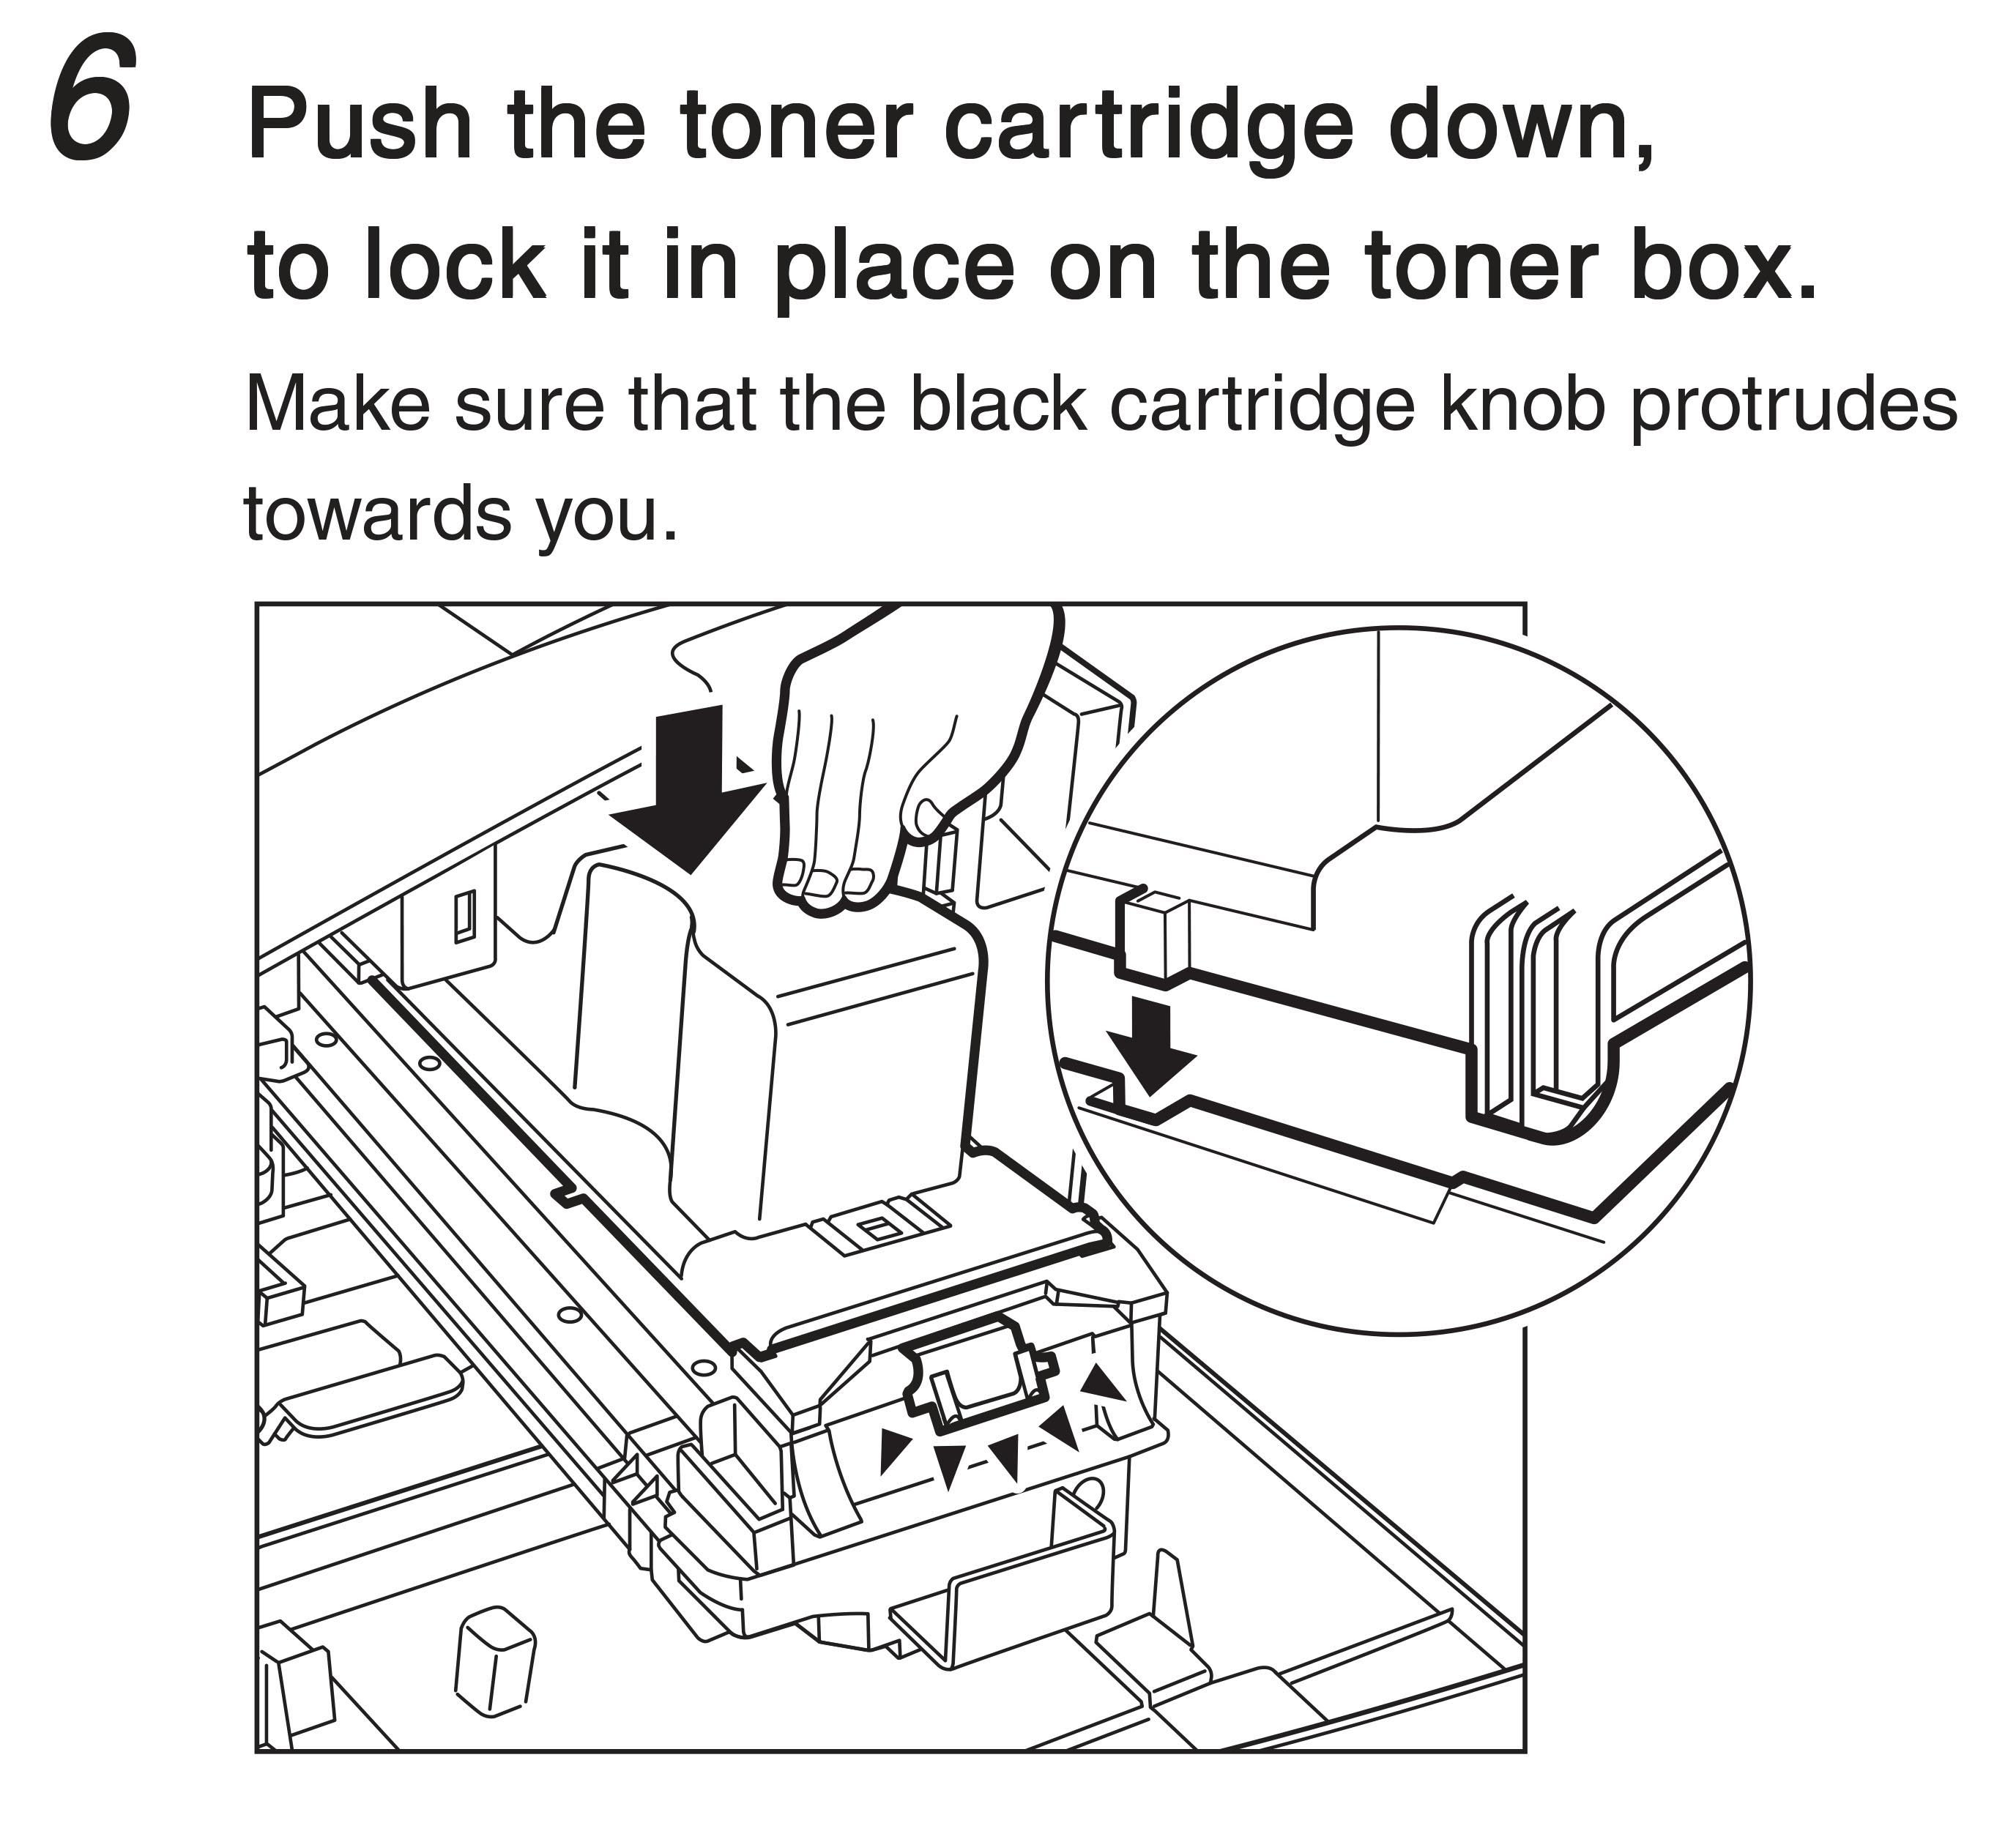 6. Push the toner cartridge down, to lock it in place on the toner box. Make sure that the black cartridge know protrudes towards you.